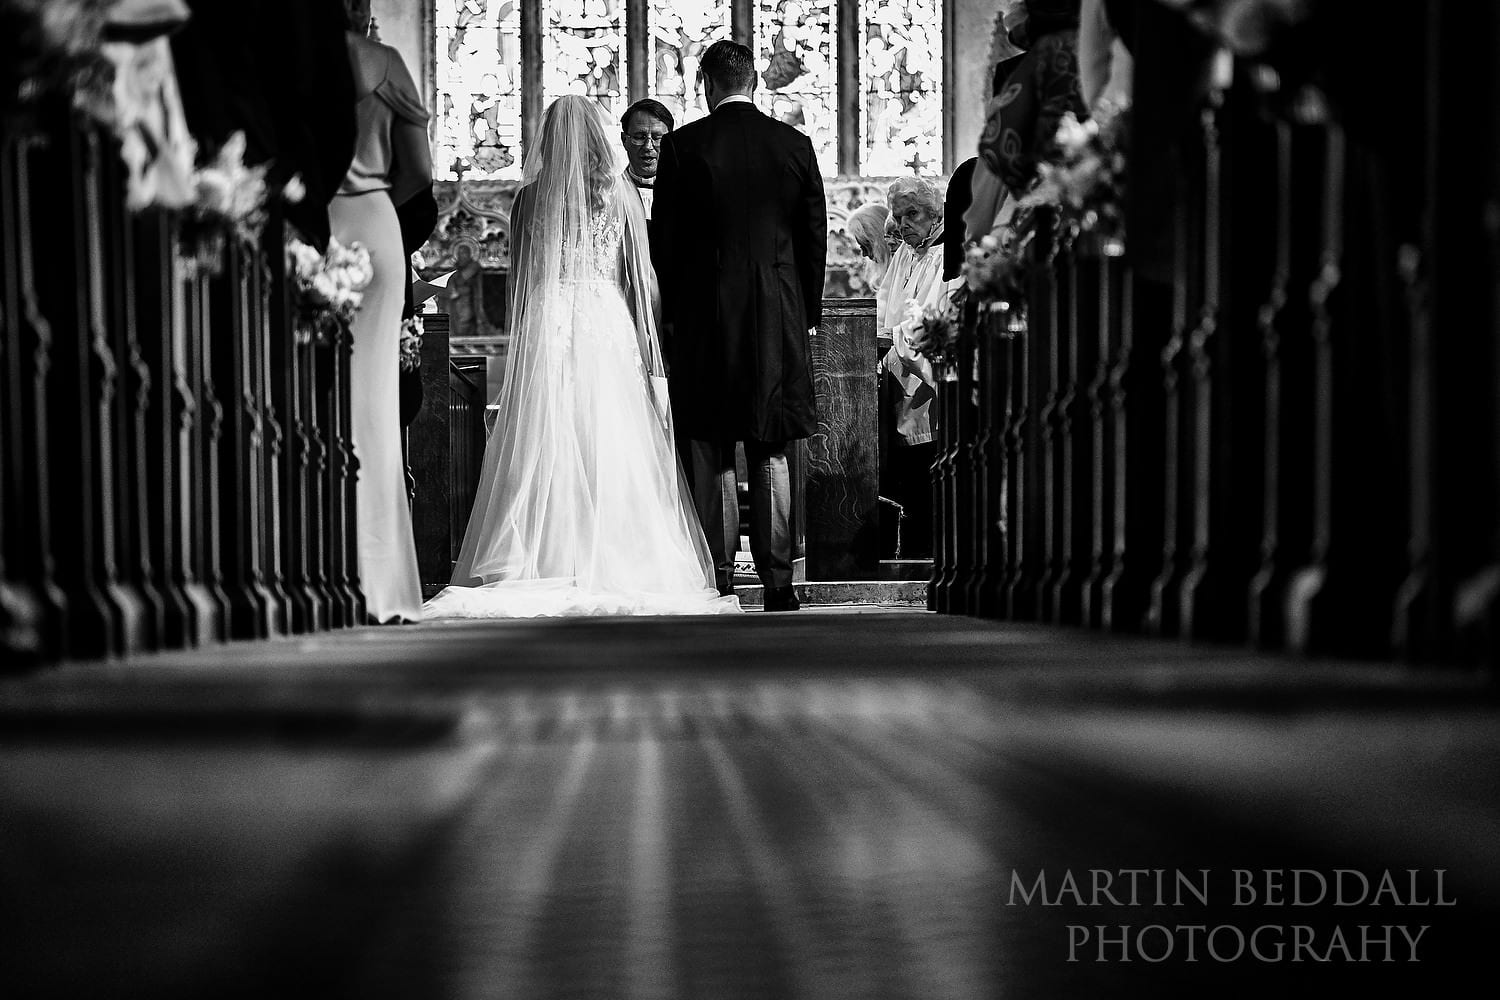 St Michael's church wedding ceremony in East Sussex